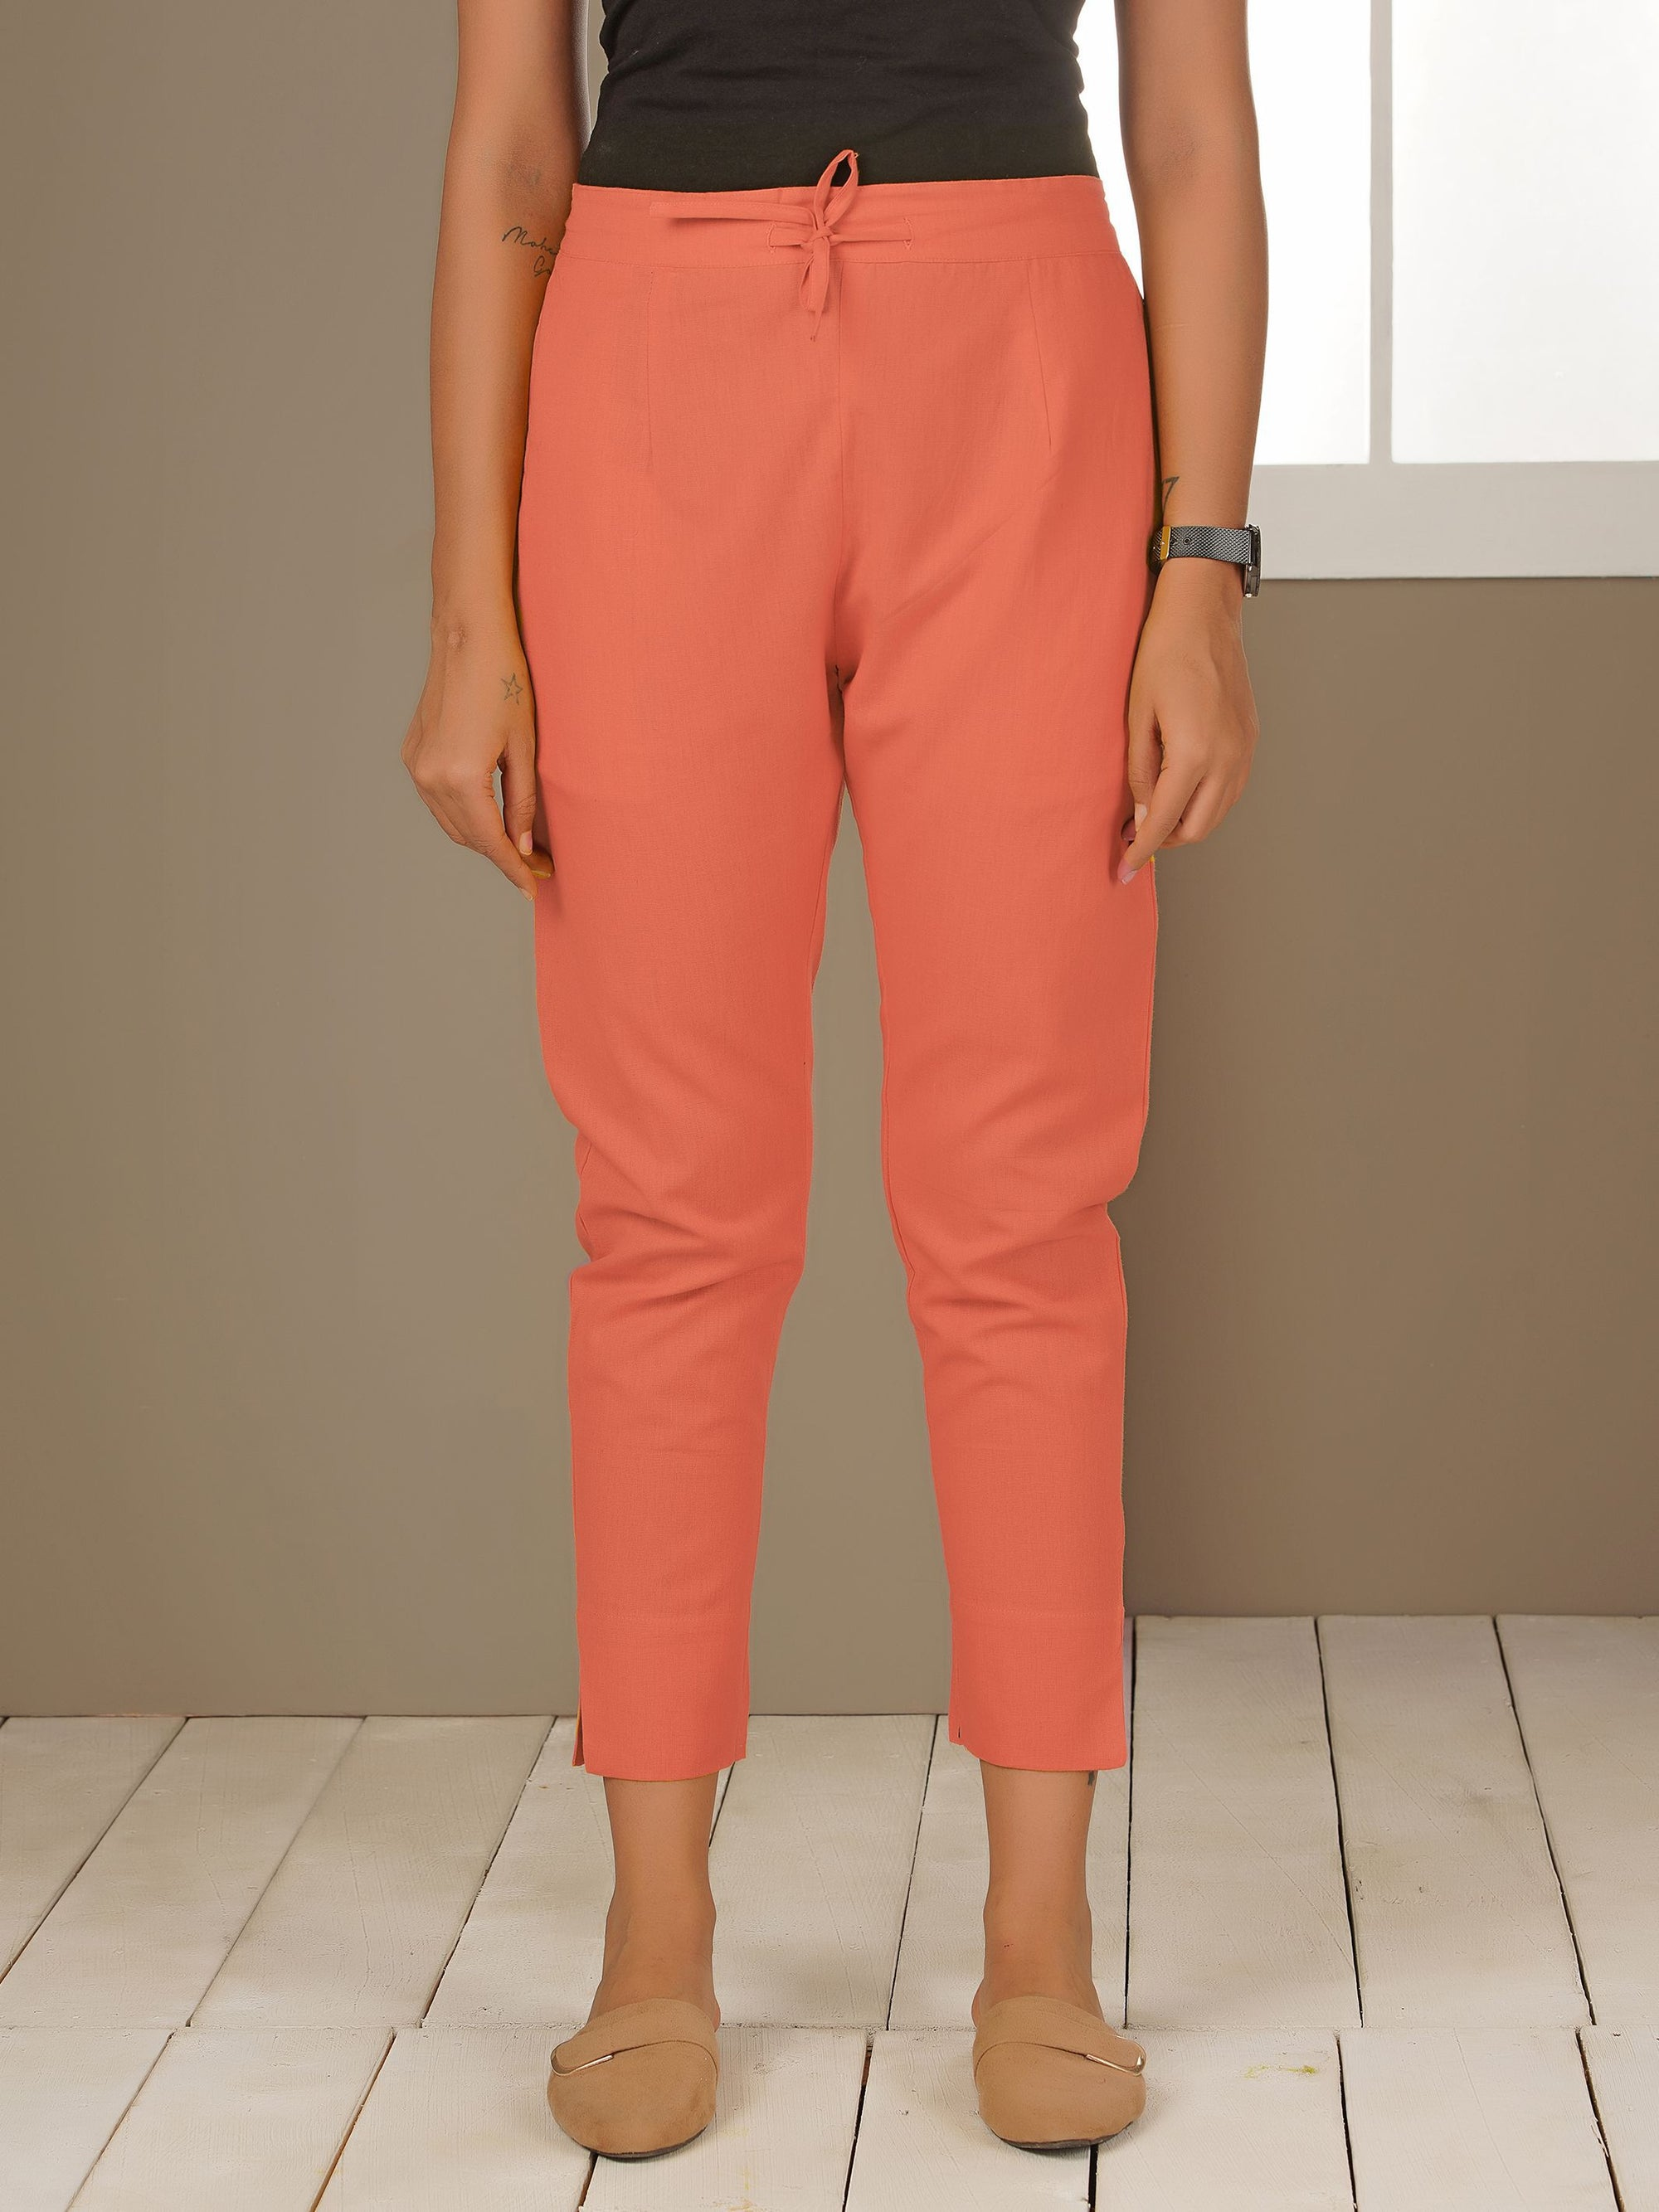 Tapered Cigarette Pants - Pink